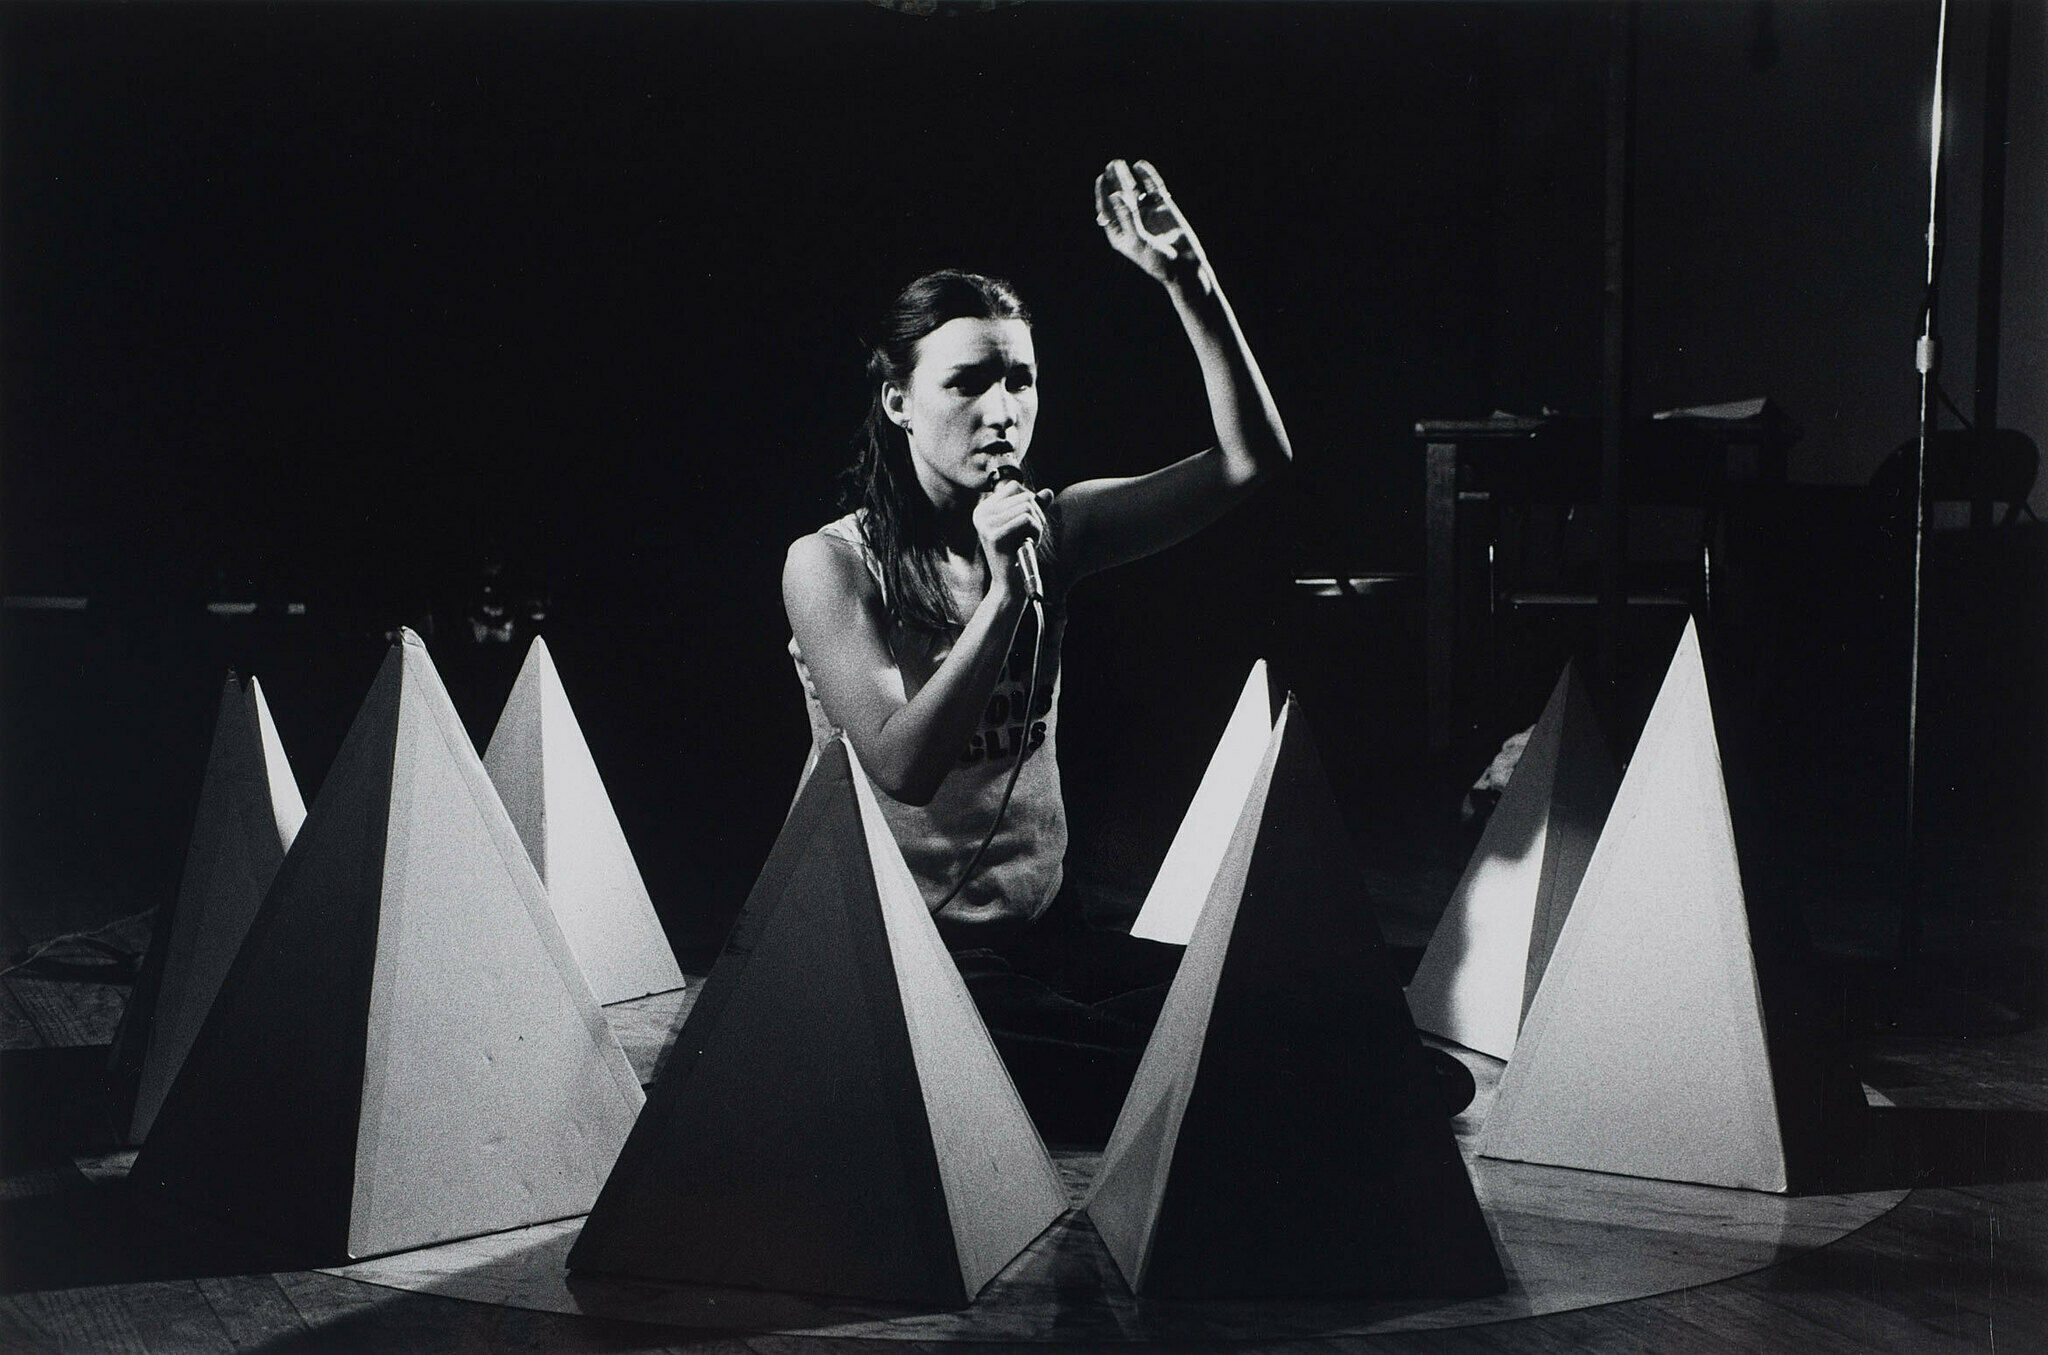 A woman kneels on a stage surrounded by sculptural objects.